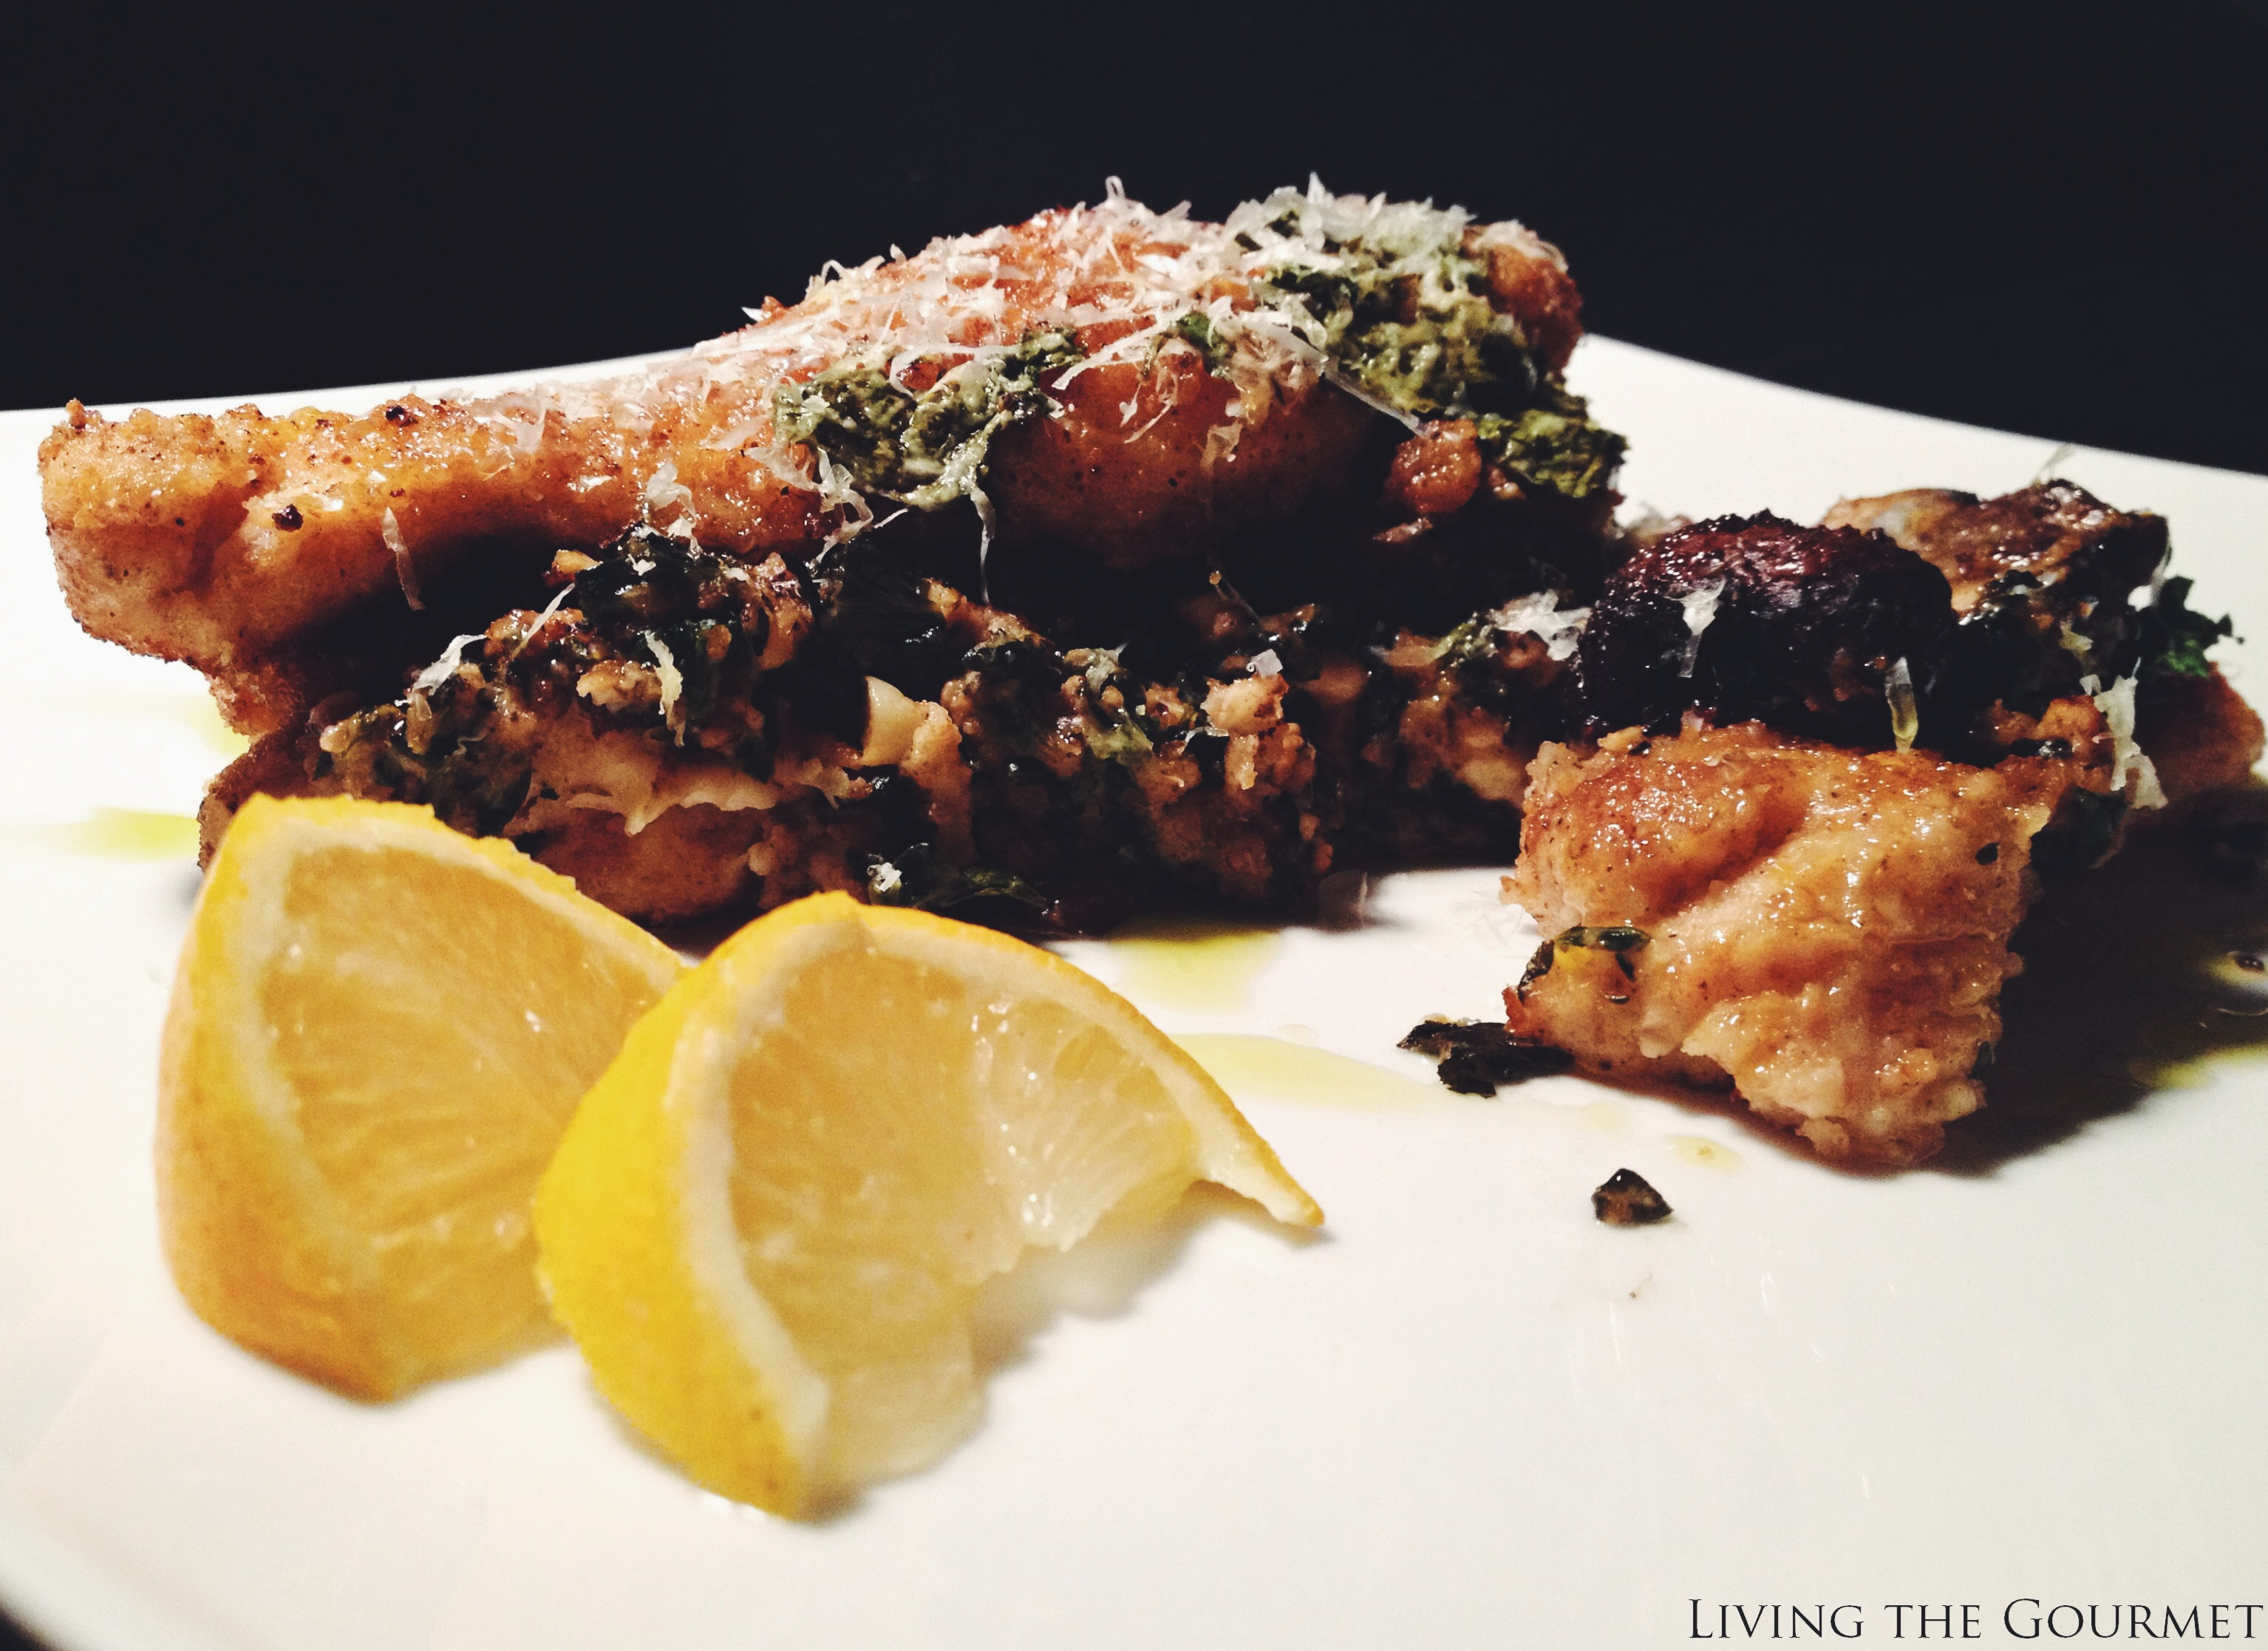 Living the Gourmet: Greek Style Chicken Cutlet Bake